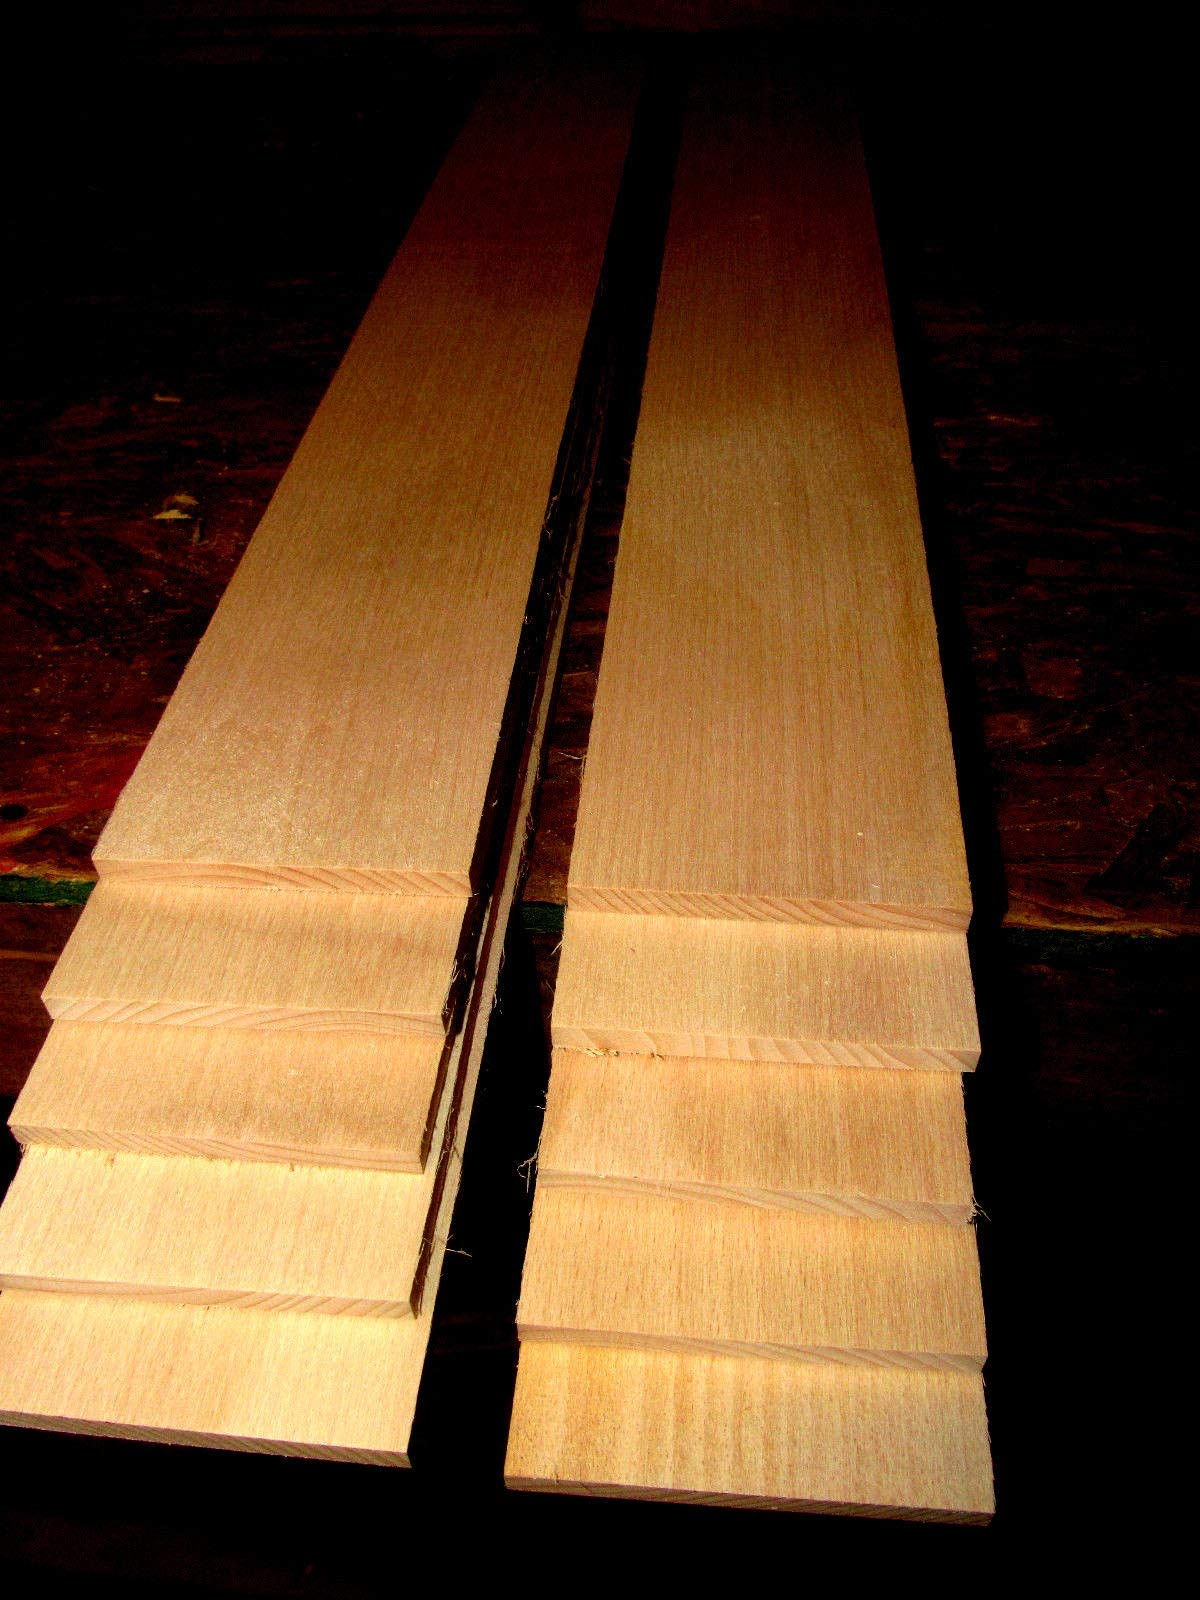 Packages of Thin Premium KILN Dried, Sanded Beech Lumber Five 24'' X 6'' X 3/8''